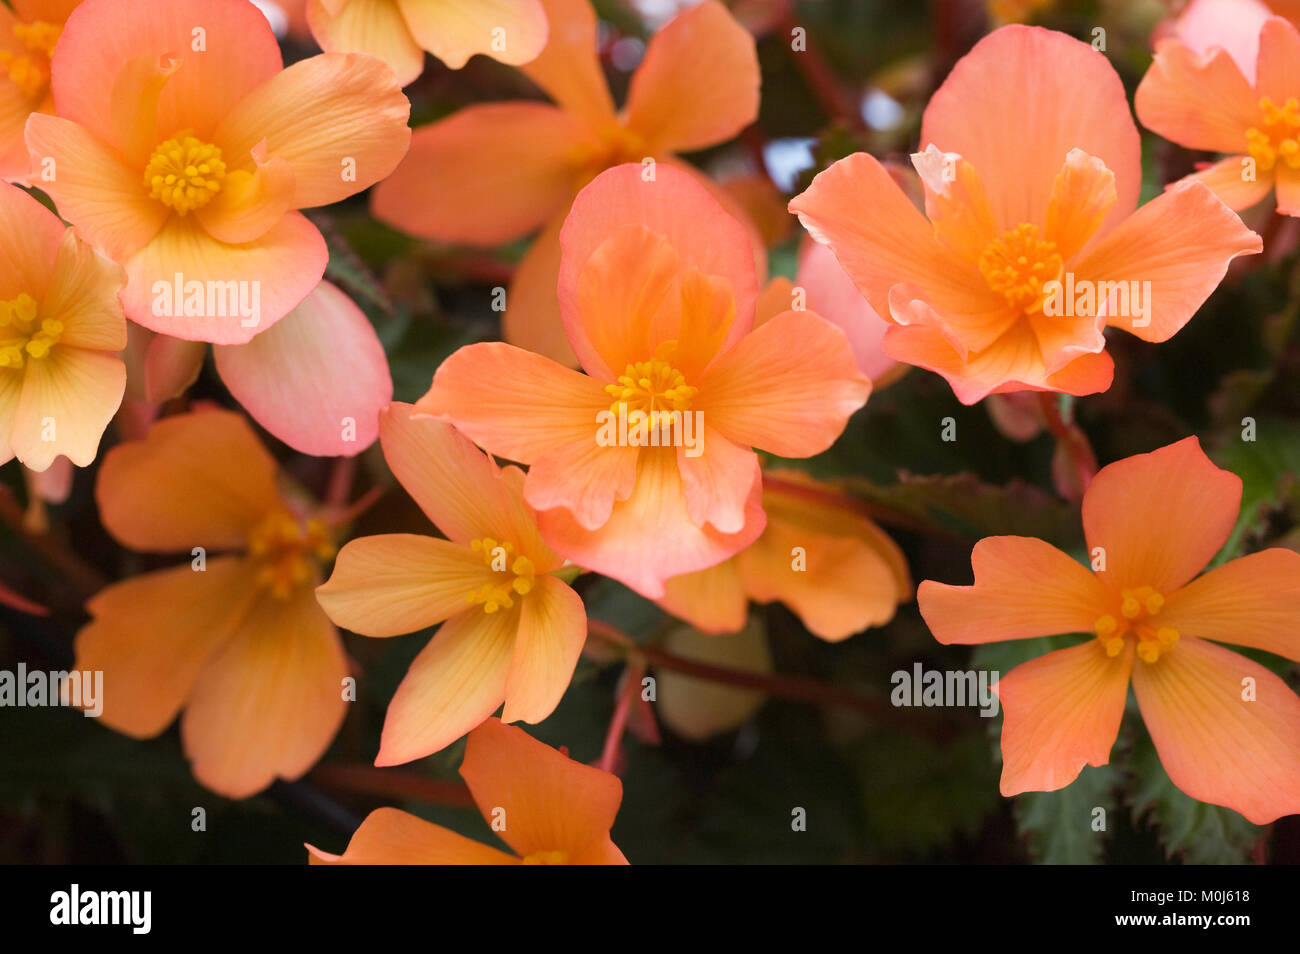 Begonia 'Unbelievable Lucky Strike' flowers. - Stock Image